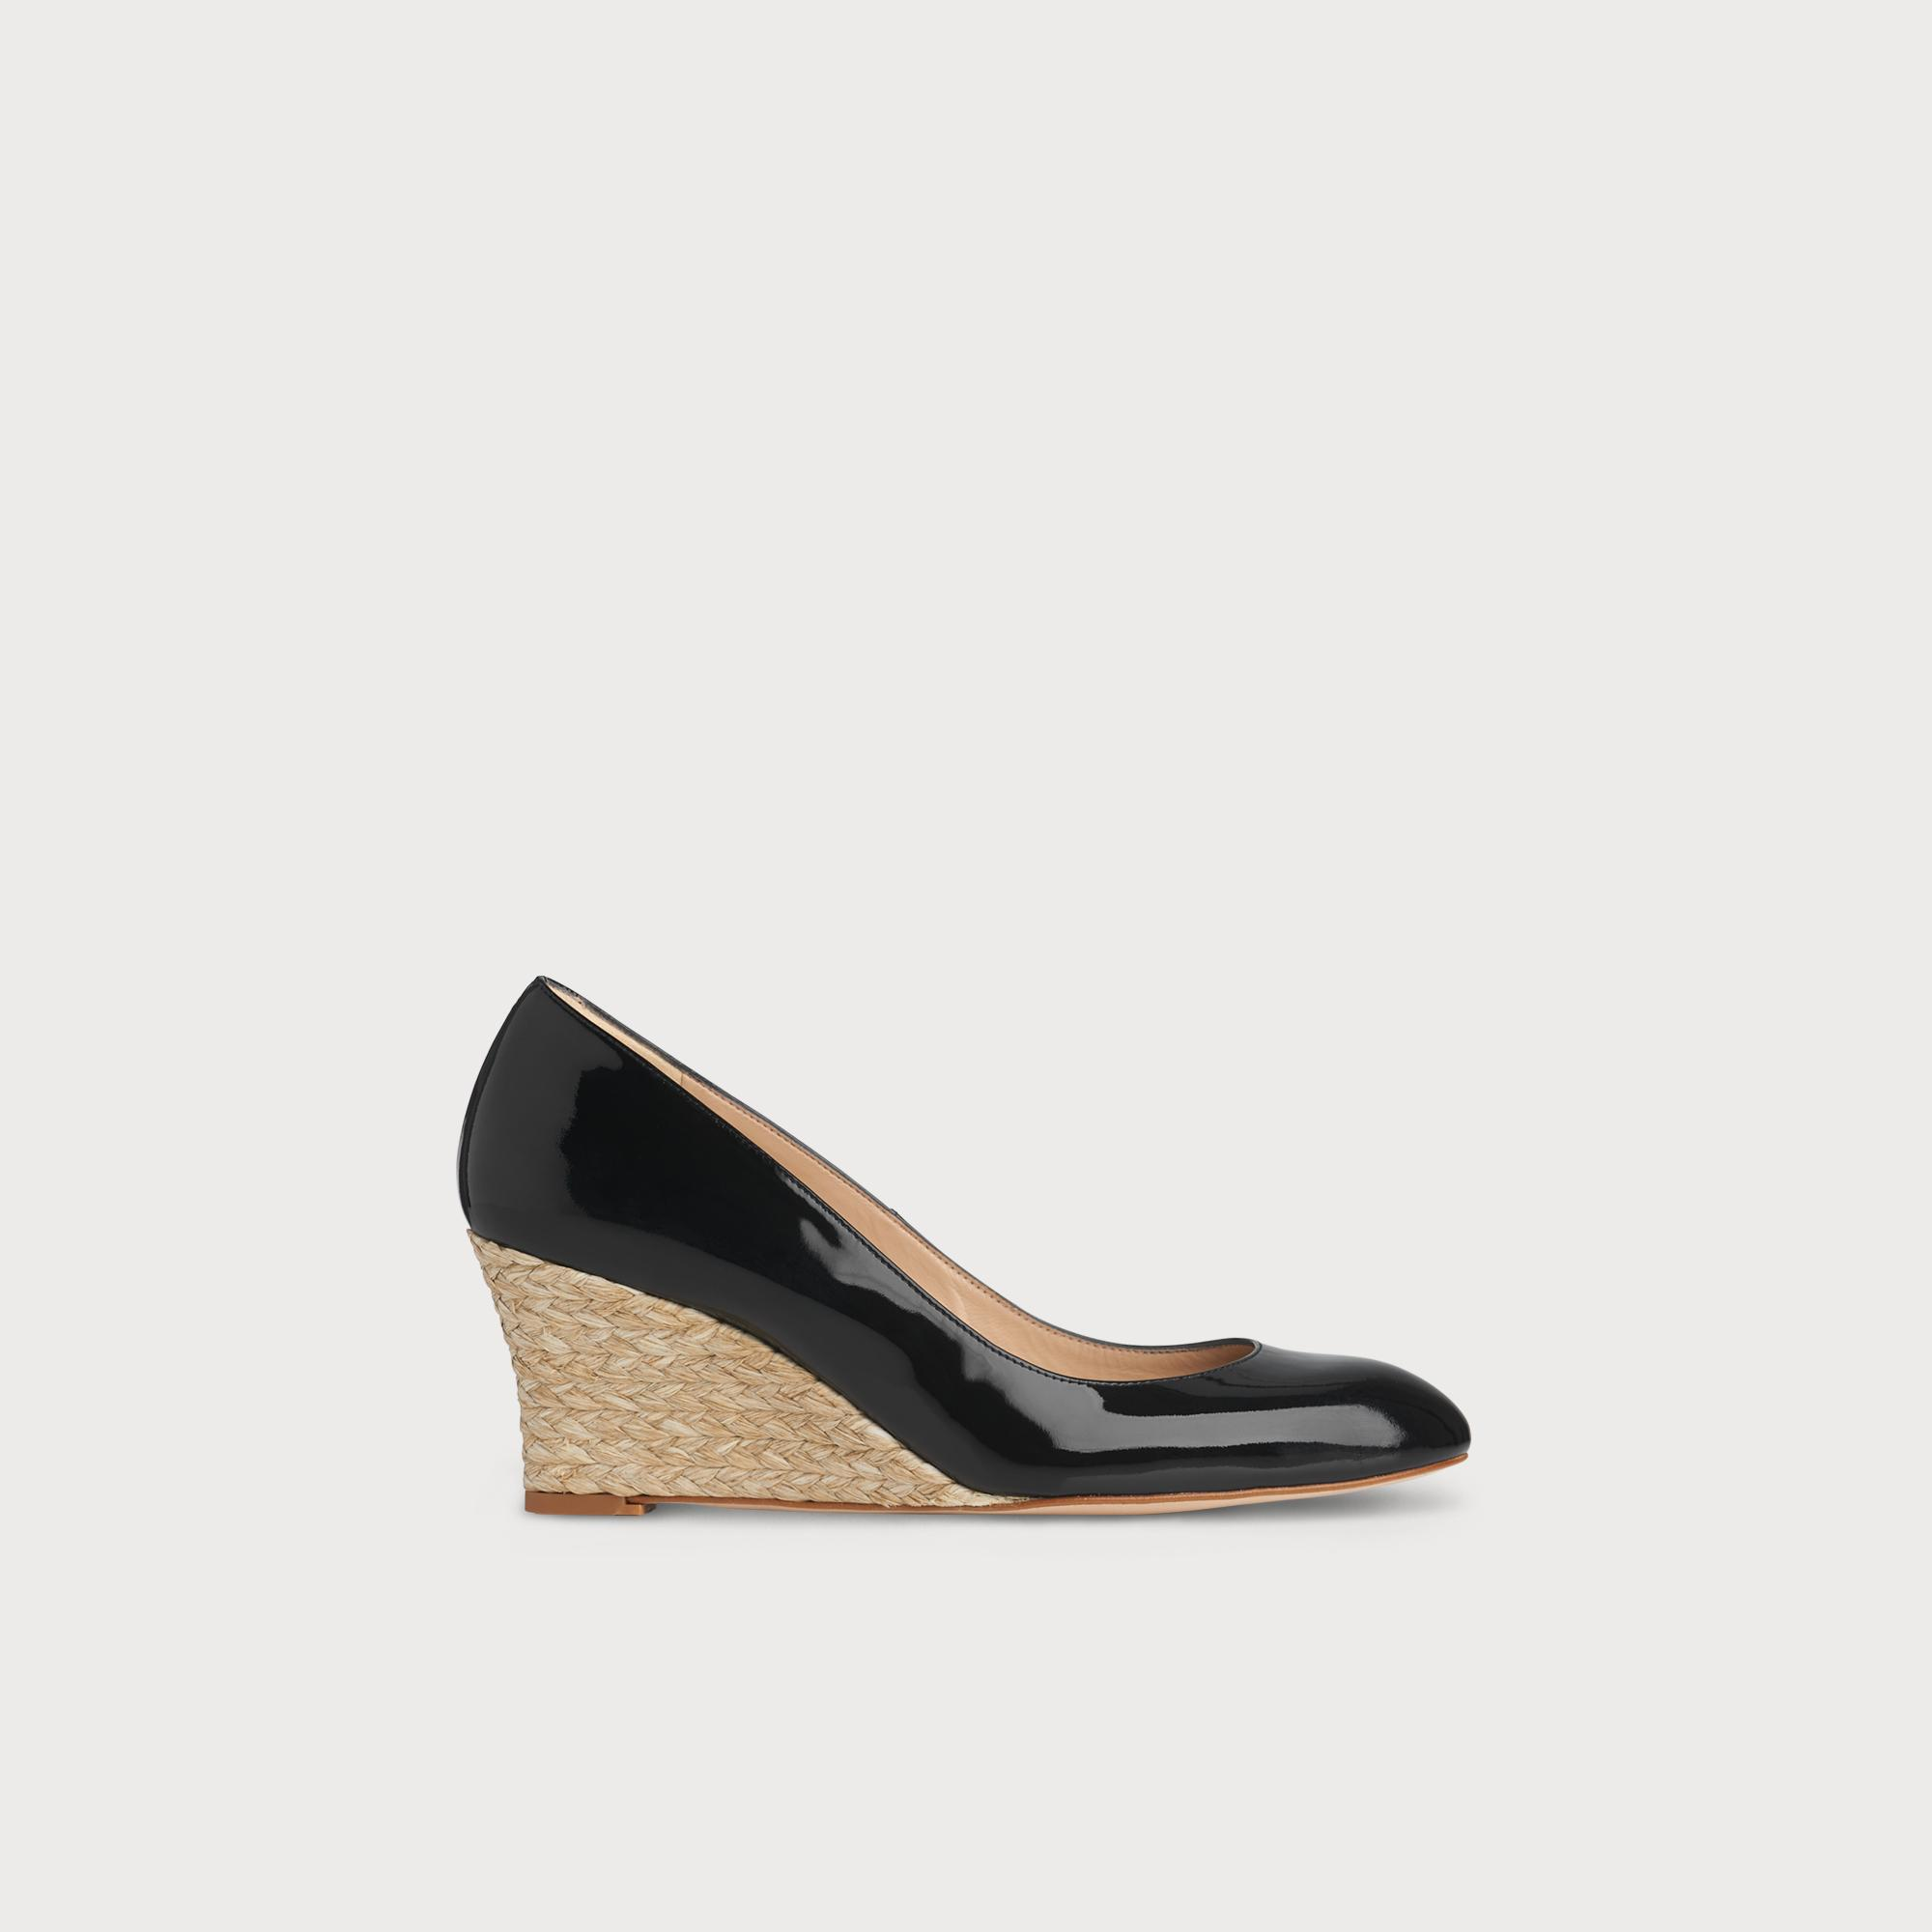 Eevi Black Patent Leather Wedge